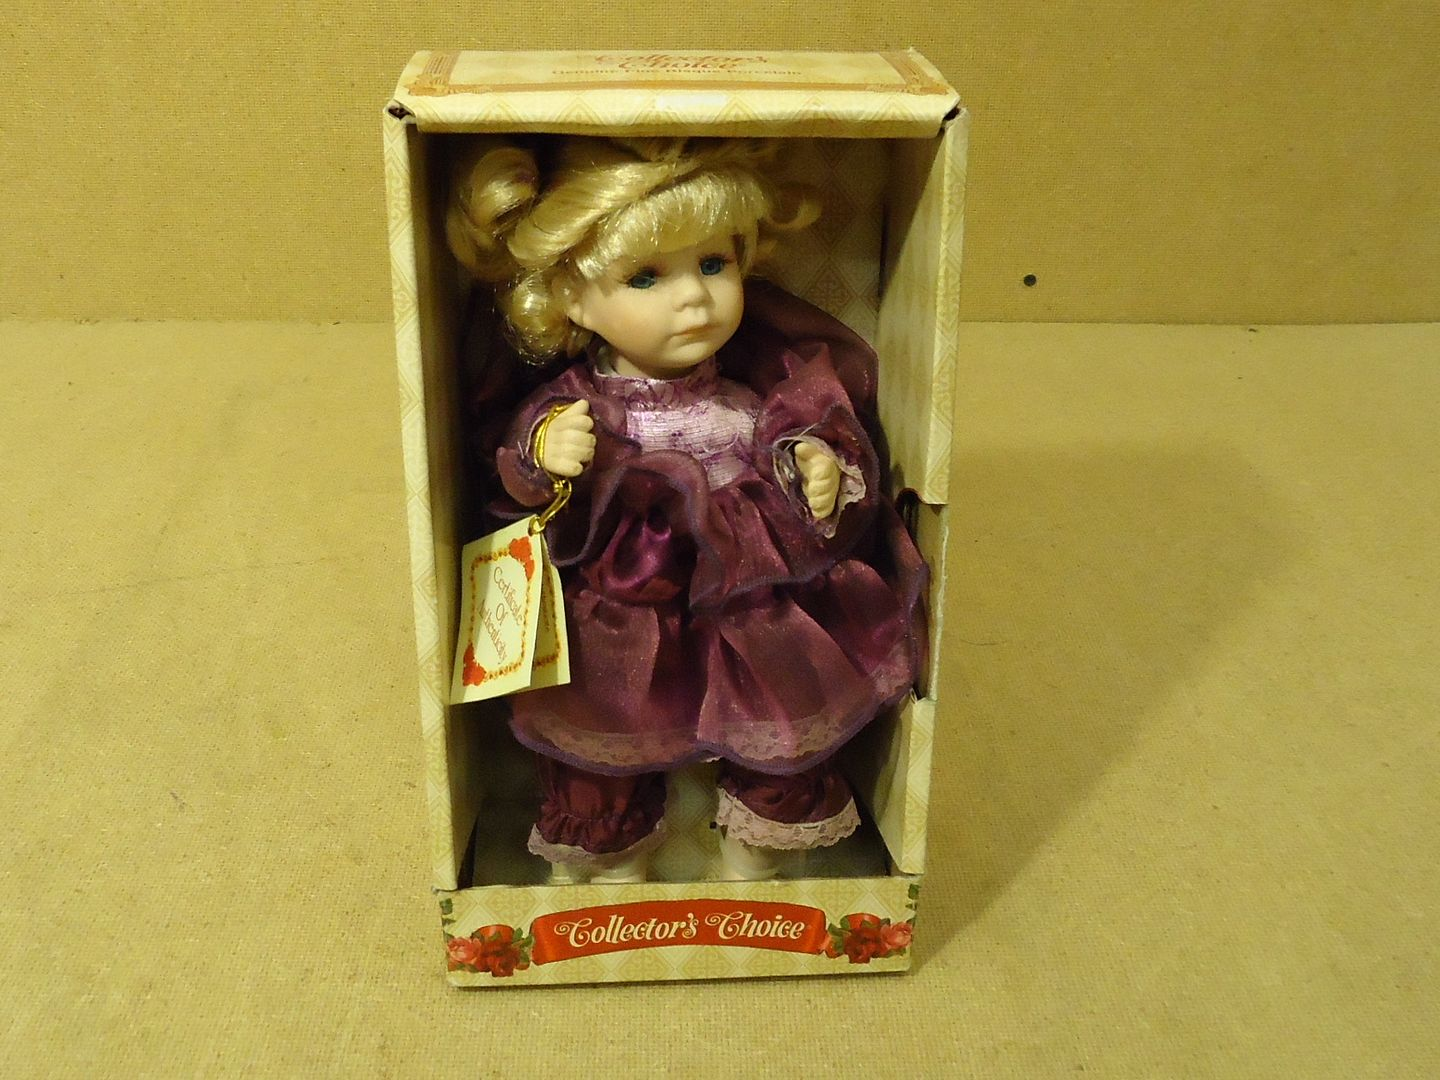 dh2498 111712-382b Collector's Choice Musical Doll 10in H x 5in W x 4in D 937313-MMV Porcelain